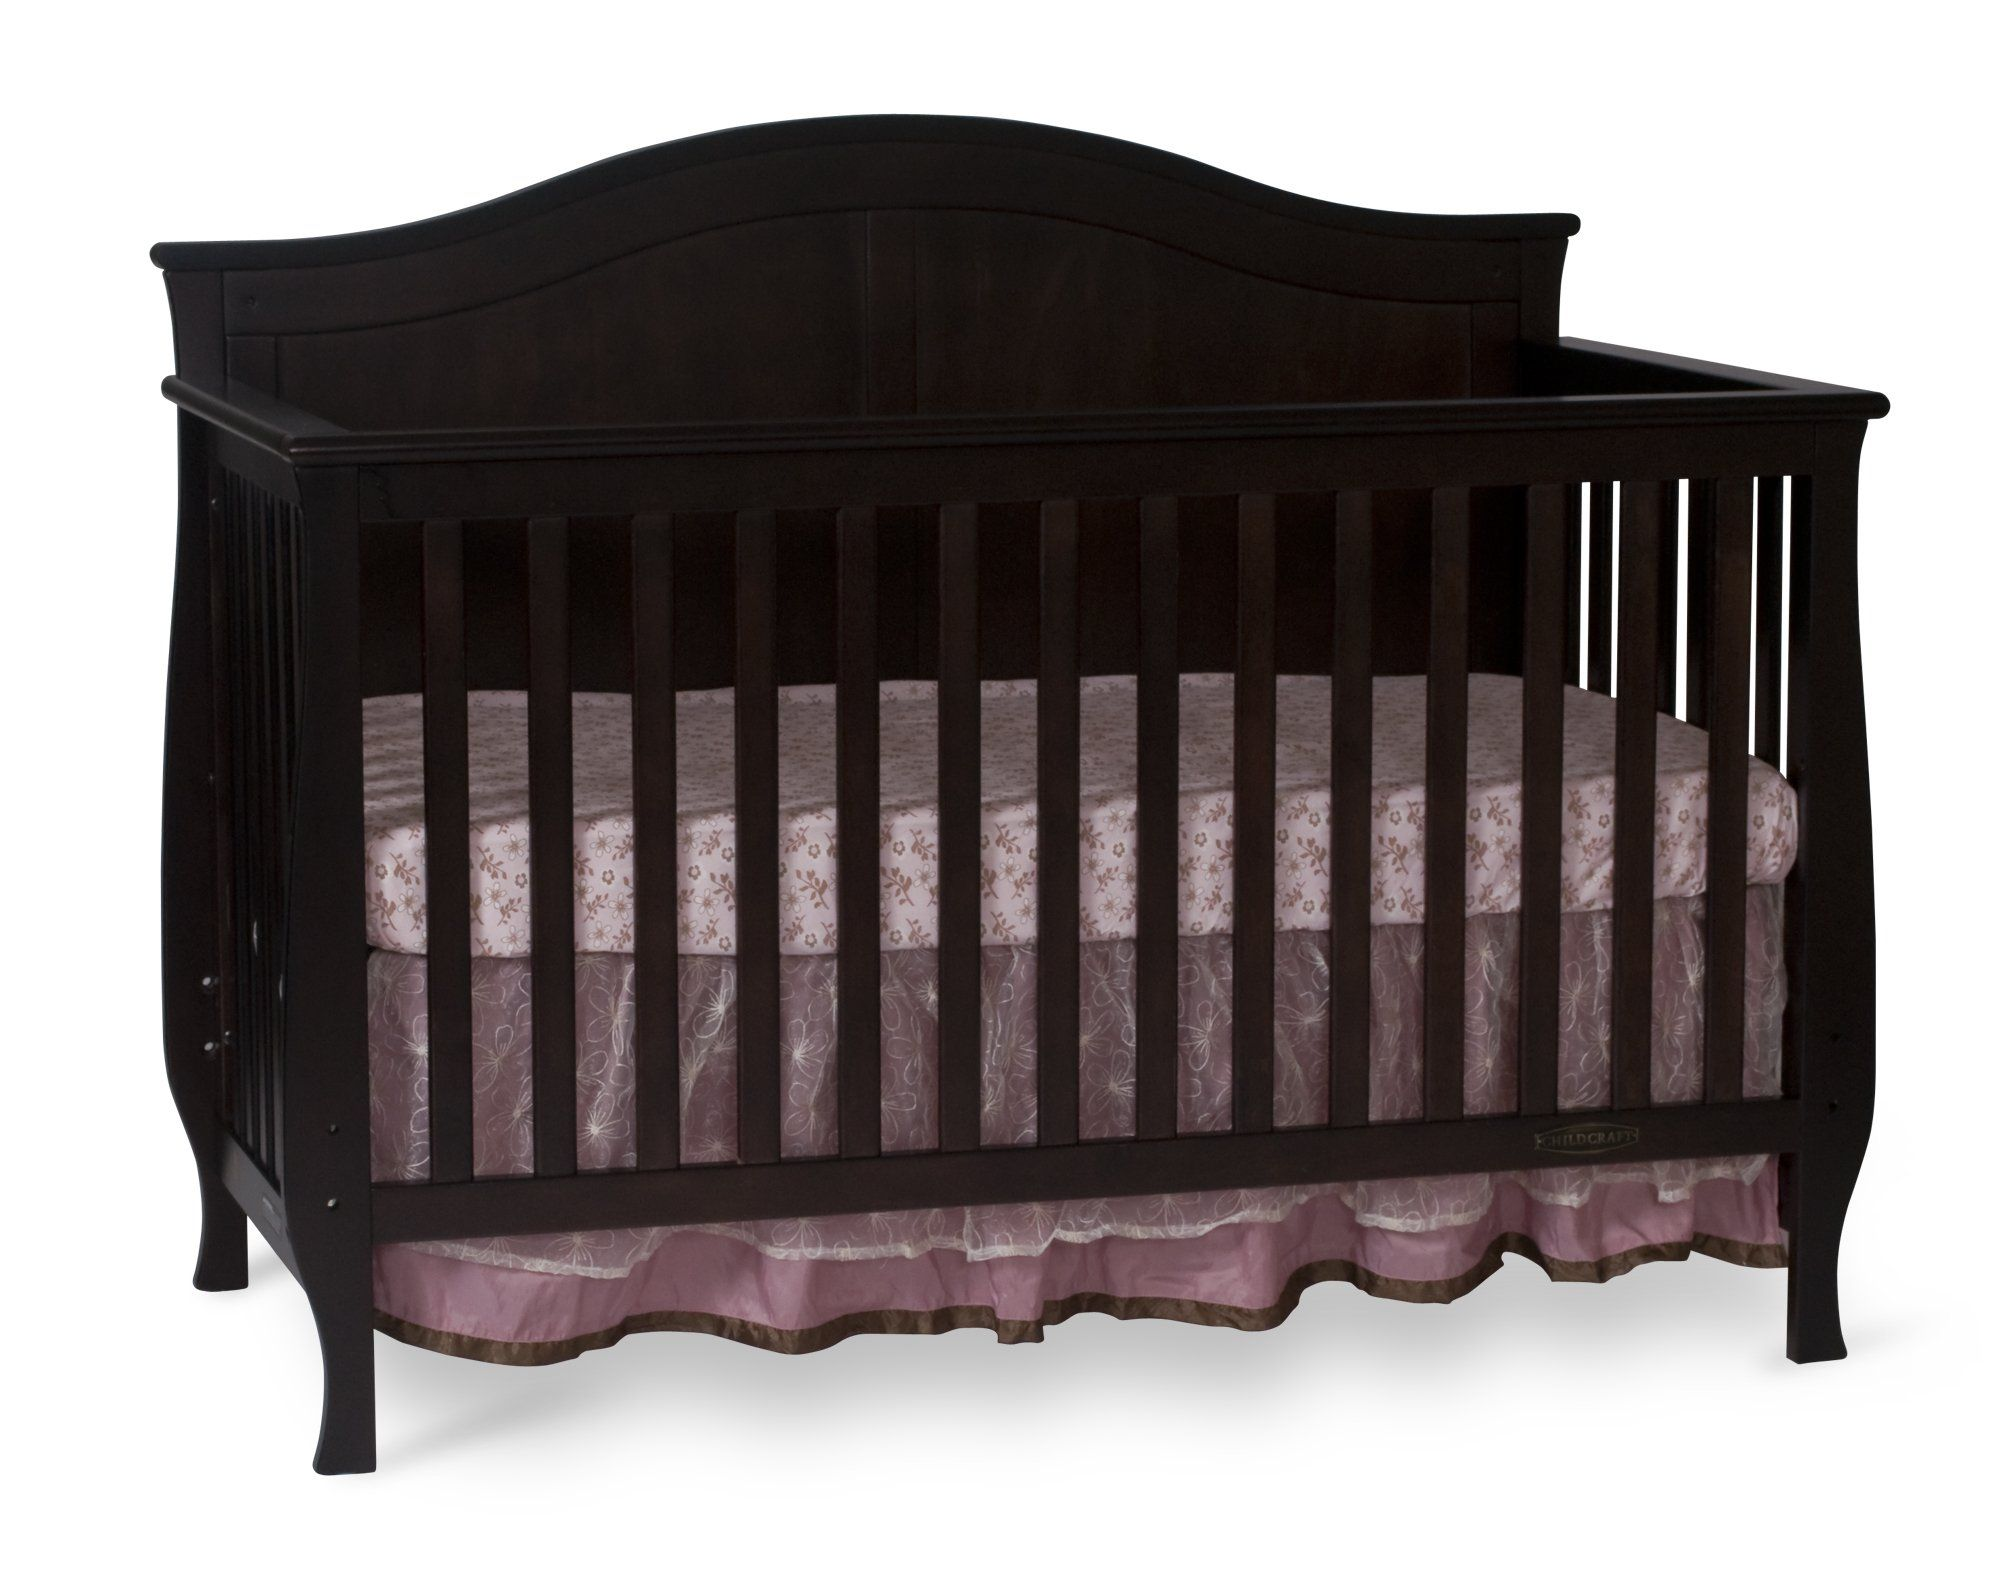 logan peculiar graceful and gadget rc crib guard recall legacy hd toddler images camden convertible rail amusing cribs for collections craft antique childcraft child